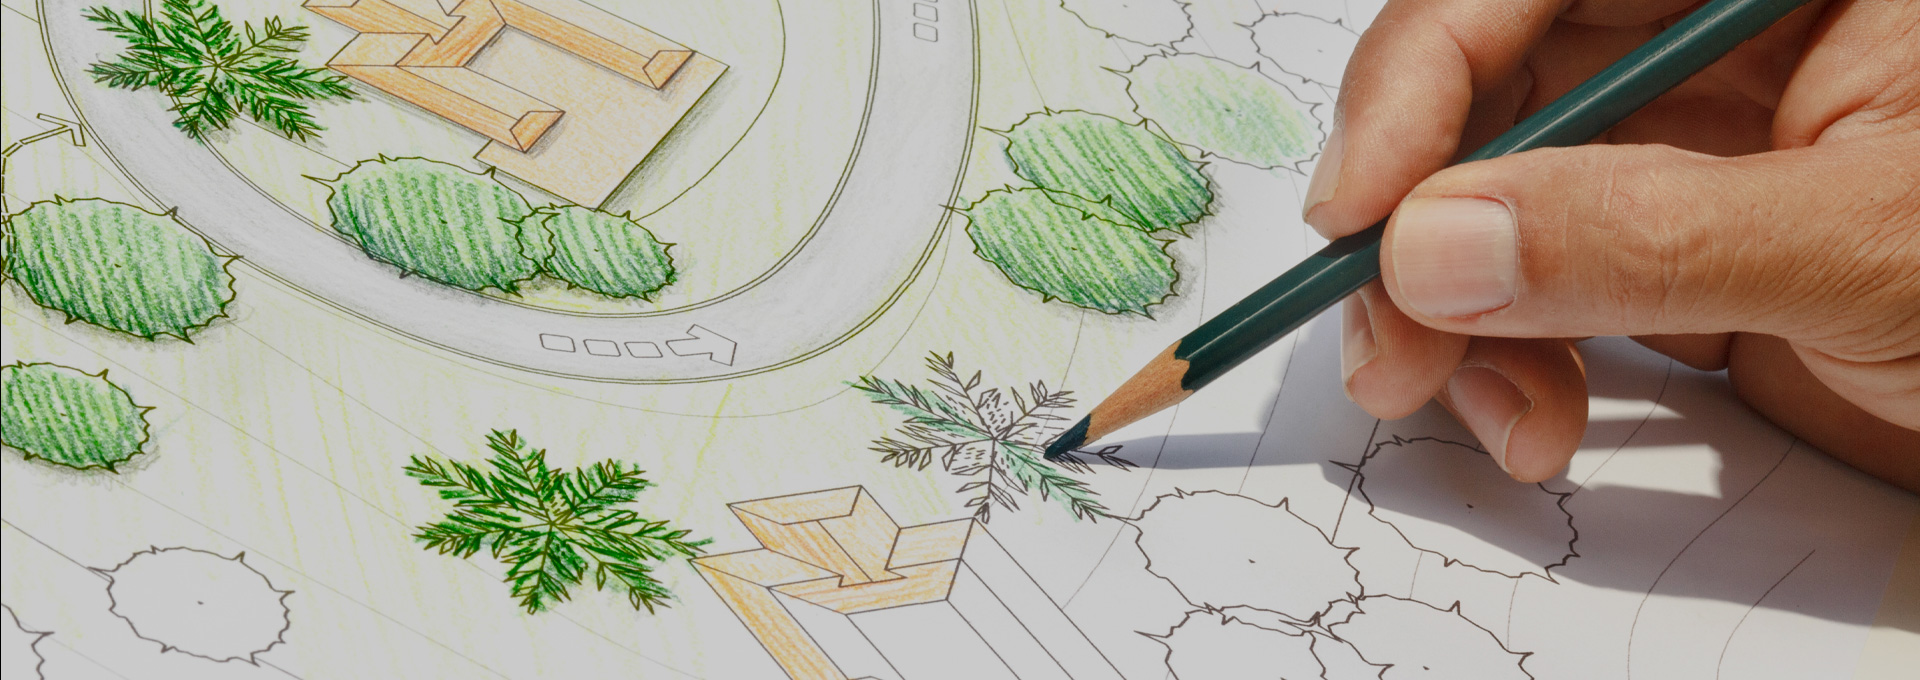 Landscaping plans & technical drawing created by Outback Landscapes specialist.